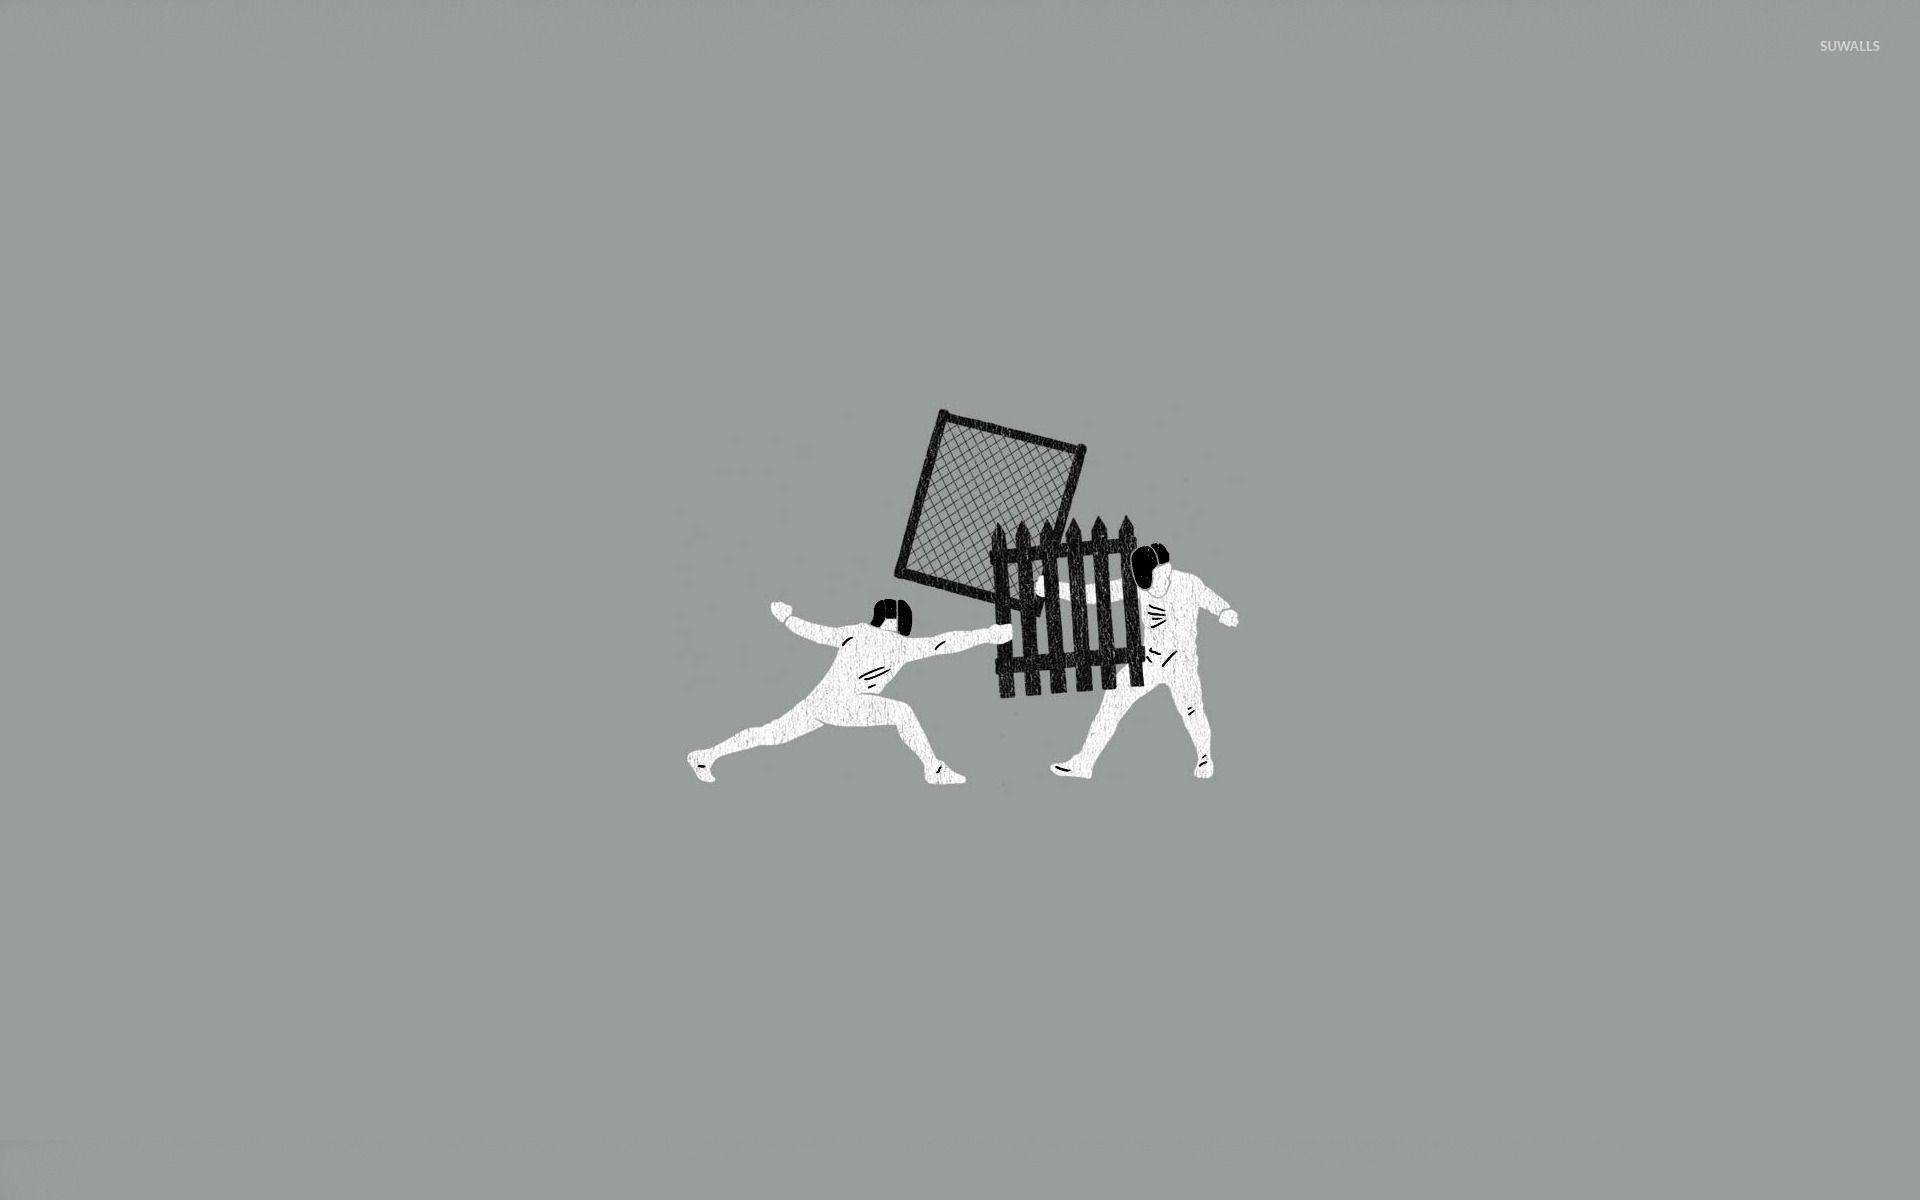 Fencing wallpaper - Funny wallpapers - #14806